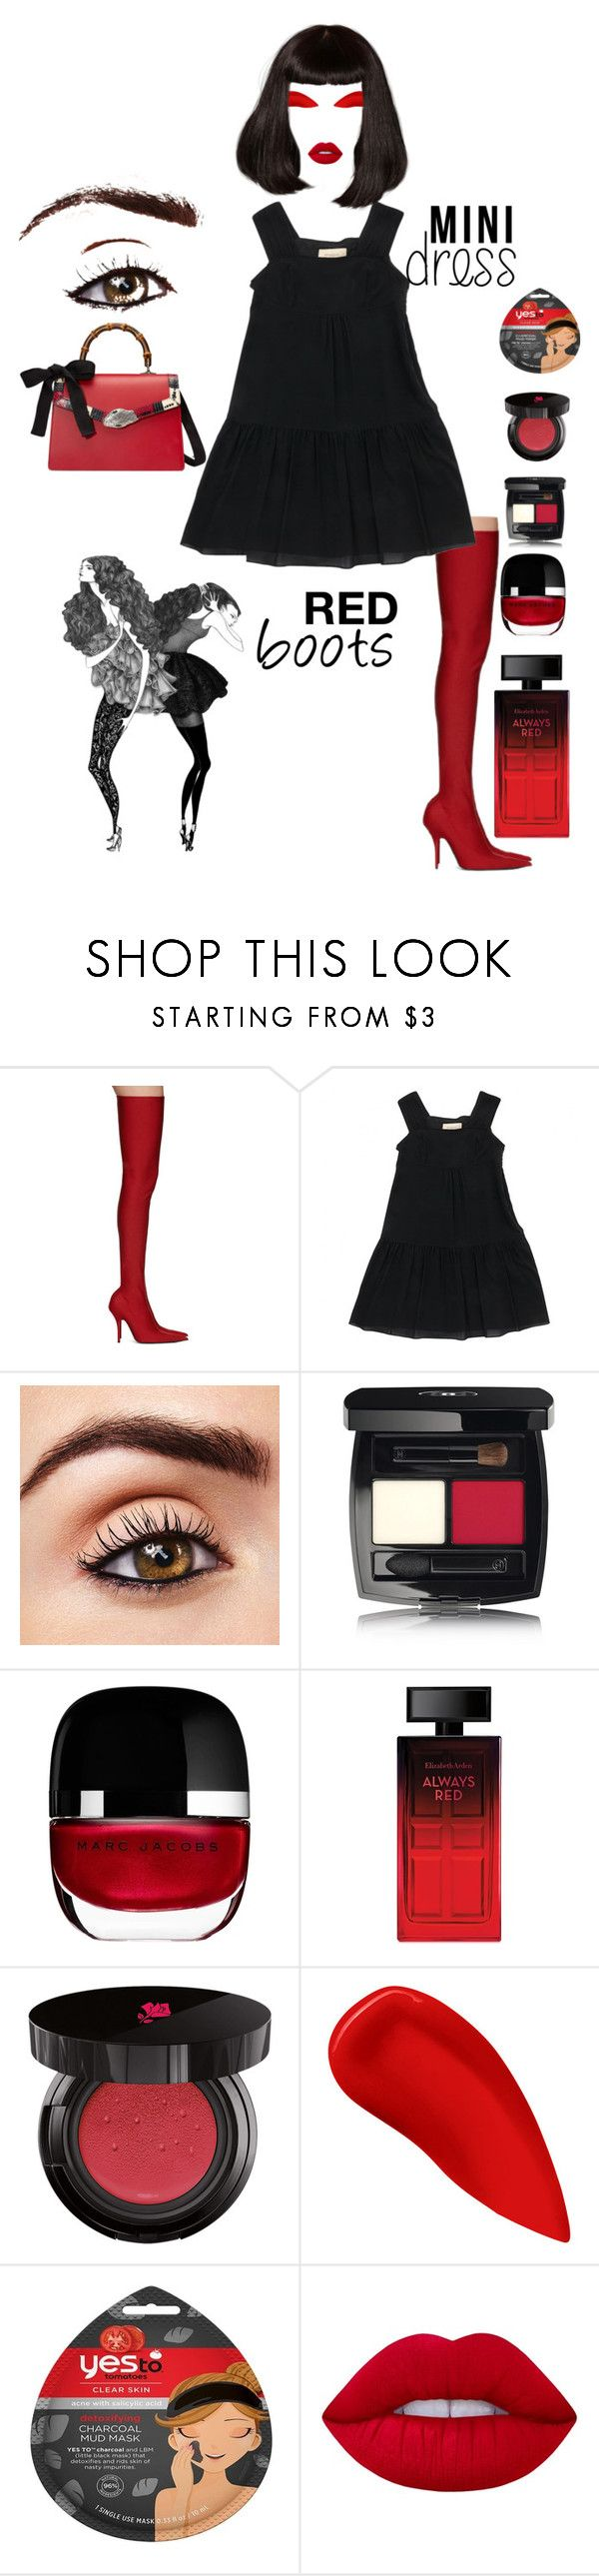 """""""Red Boots"""" by lizzylima ❤ liked on Polyvore featuring Balenciaga, Burberry, Chanel, Marc Jacobs, Elizabeth Arden, Lancôme, Lipstick Queen, Forever 21, Lime Crime and Gucci"""